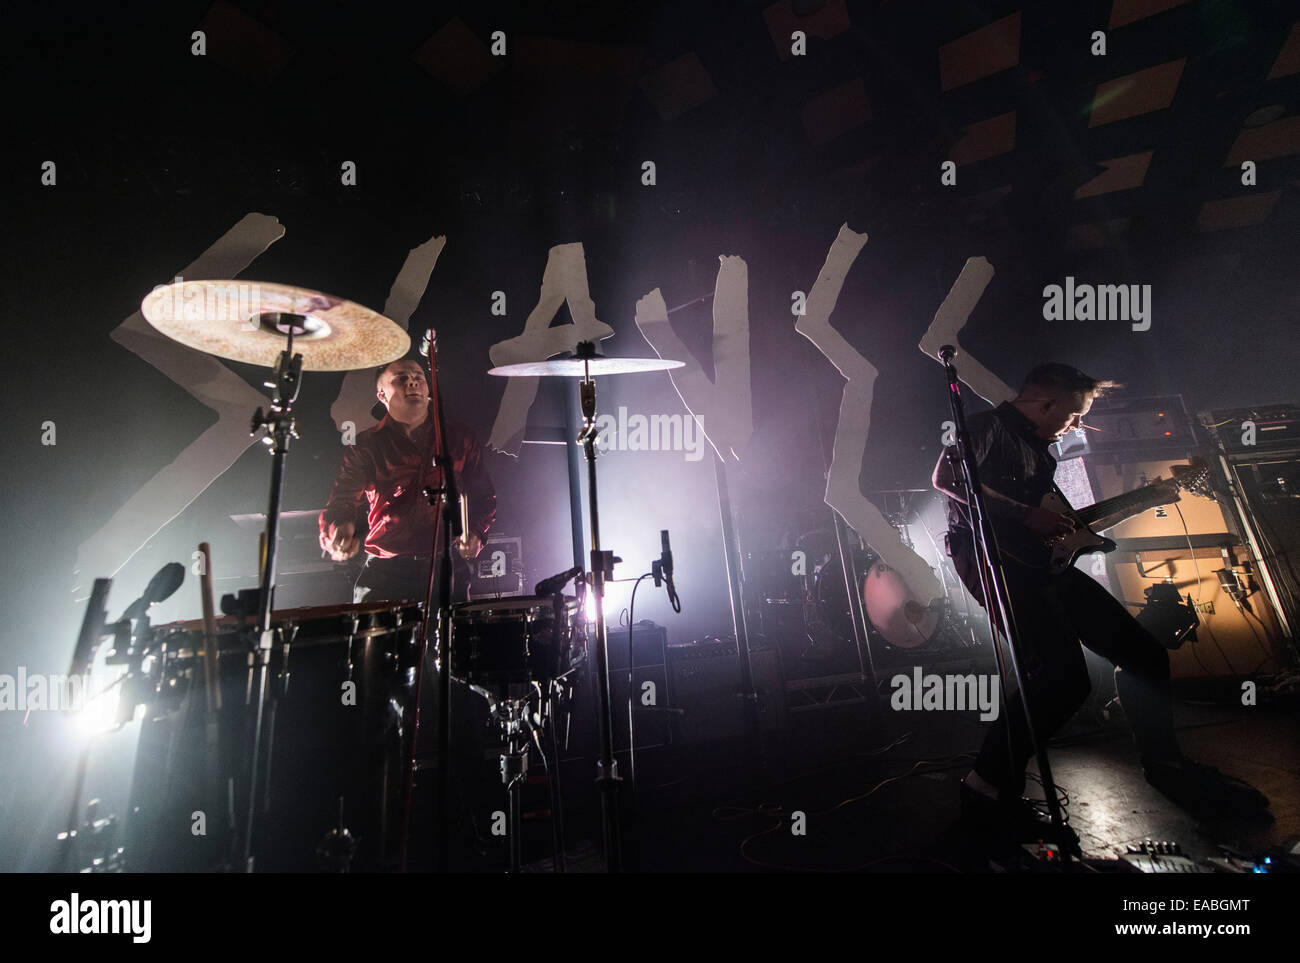 Isaac Holman and Laurie Vincent (L-R) of Slaves performs on stage at Barrowlands Ballroom on November 10, 2014  - Stock Image